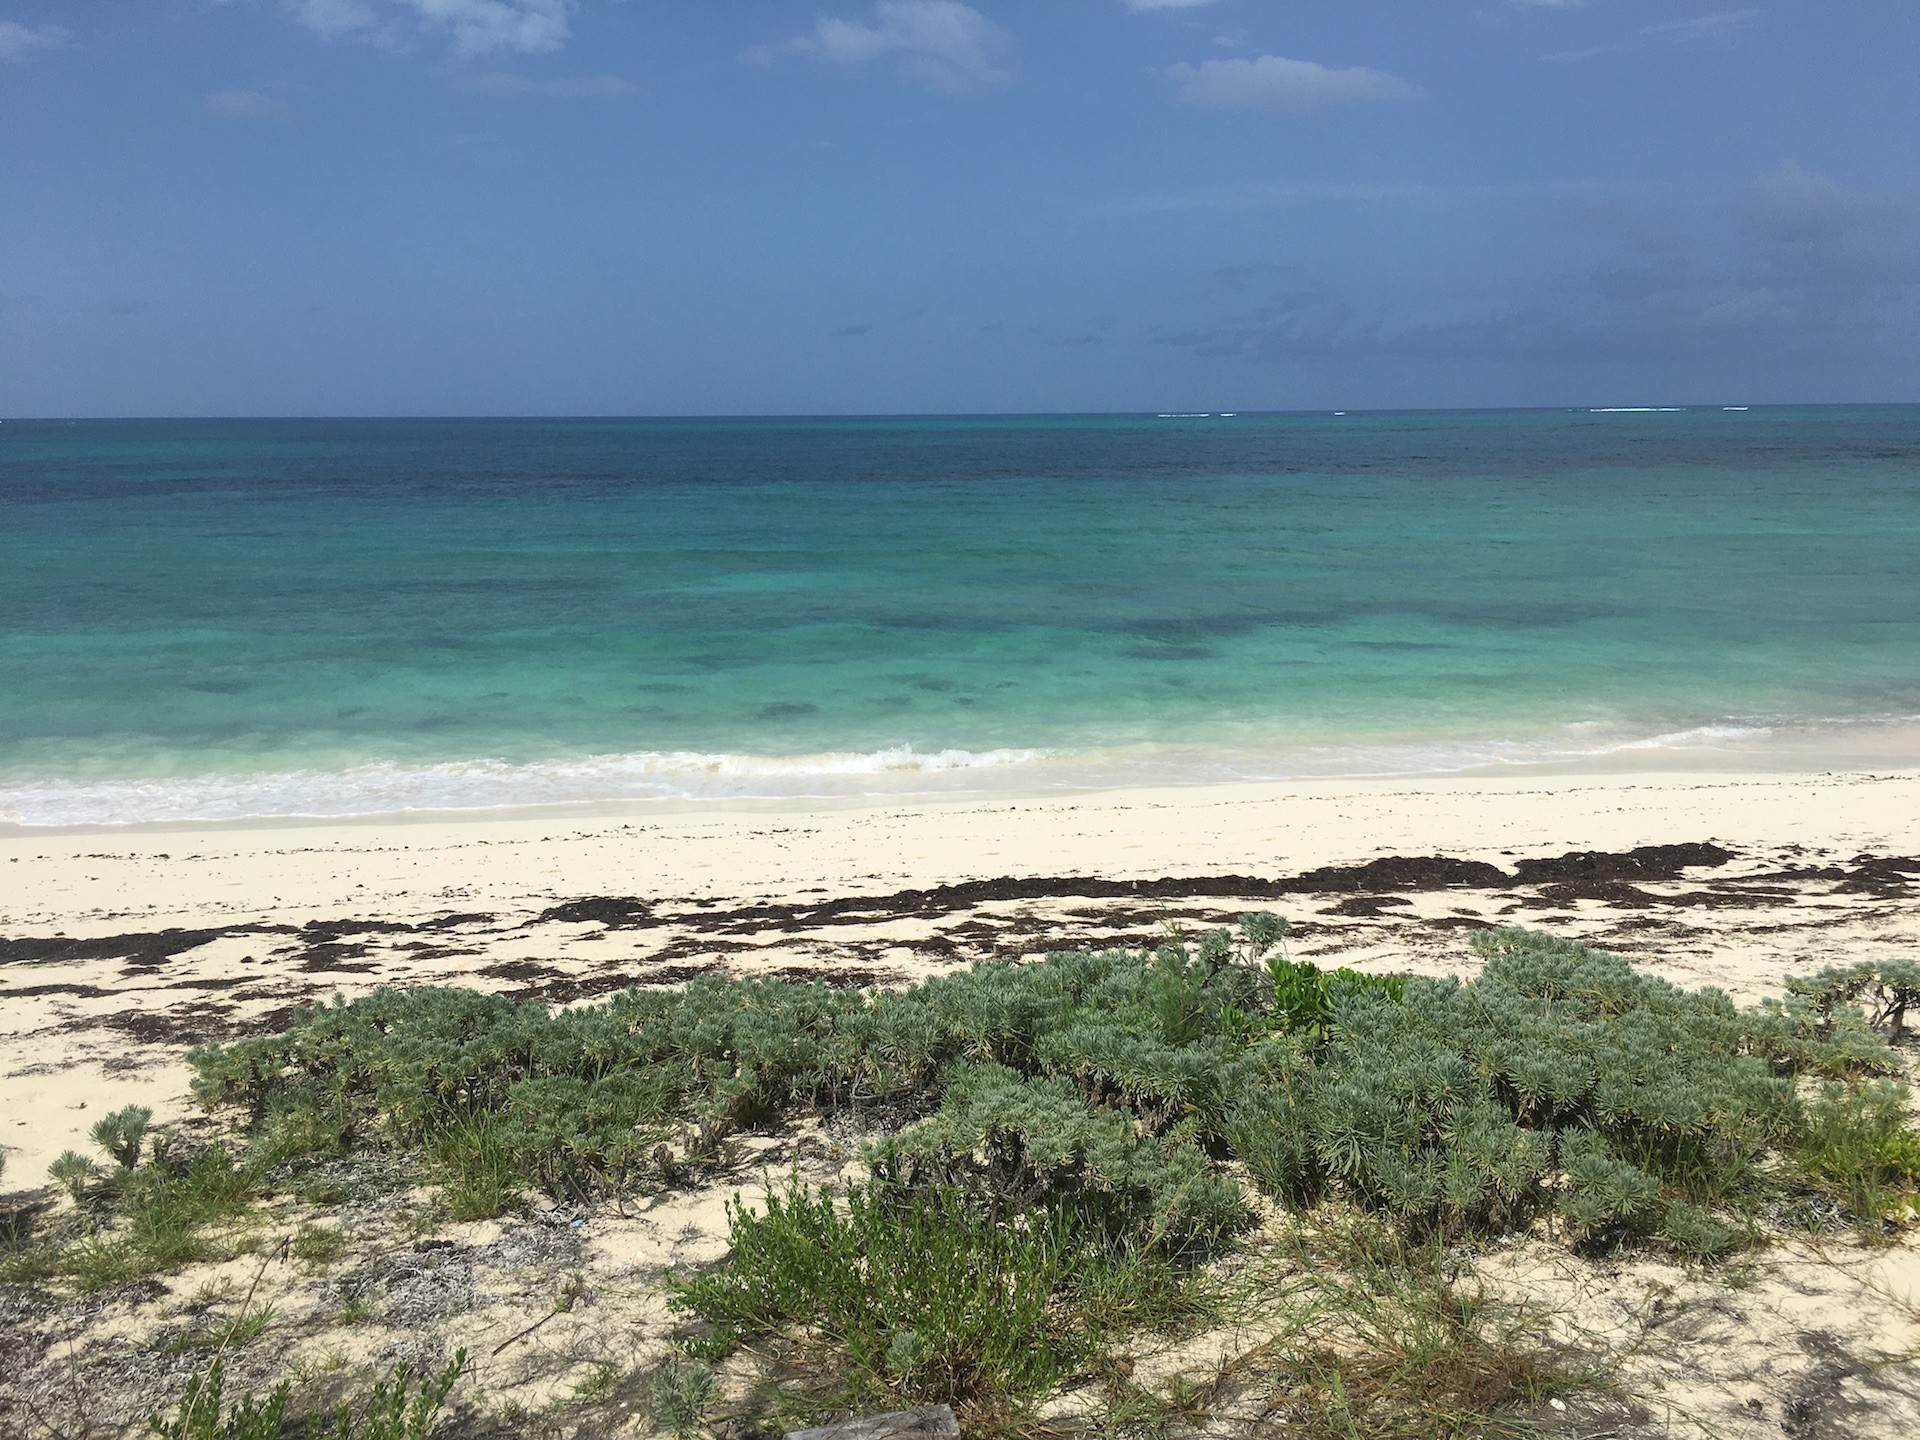 7. Land / Lots for Sale at Deck House Property - MLS 43732 Green Turtle Cay, Abaco, Bahamas